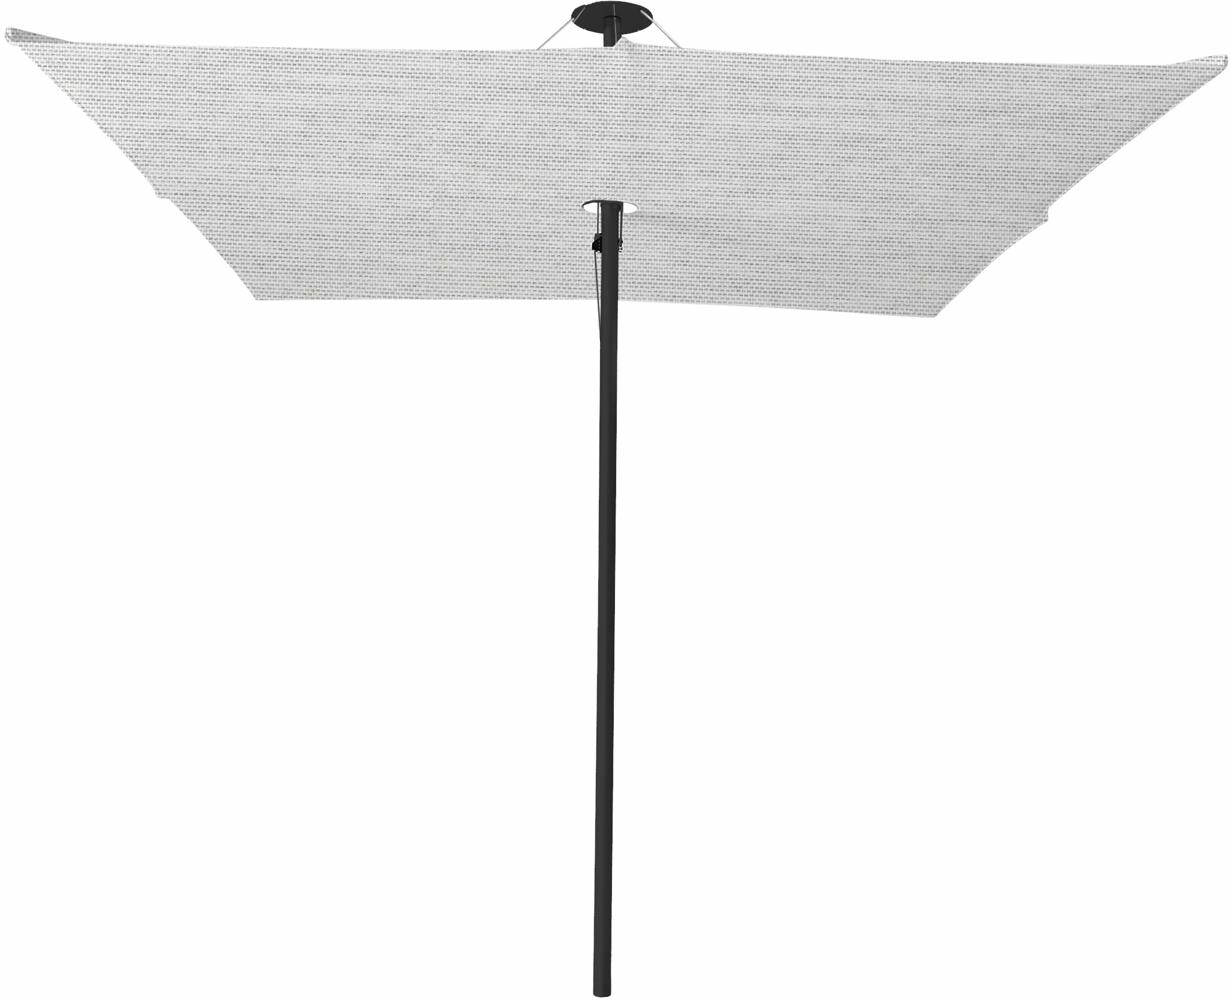 Infina center post umbrella, 3 m square, with frame in Dusk and Solidum Marble canopy.